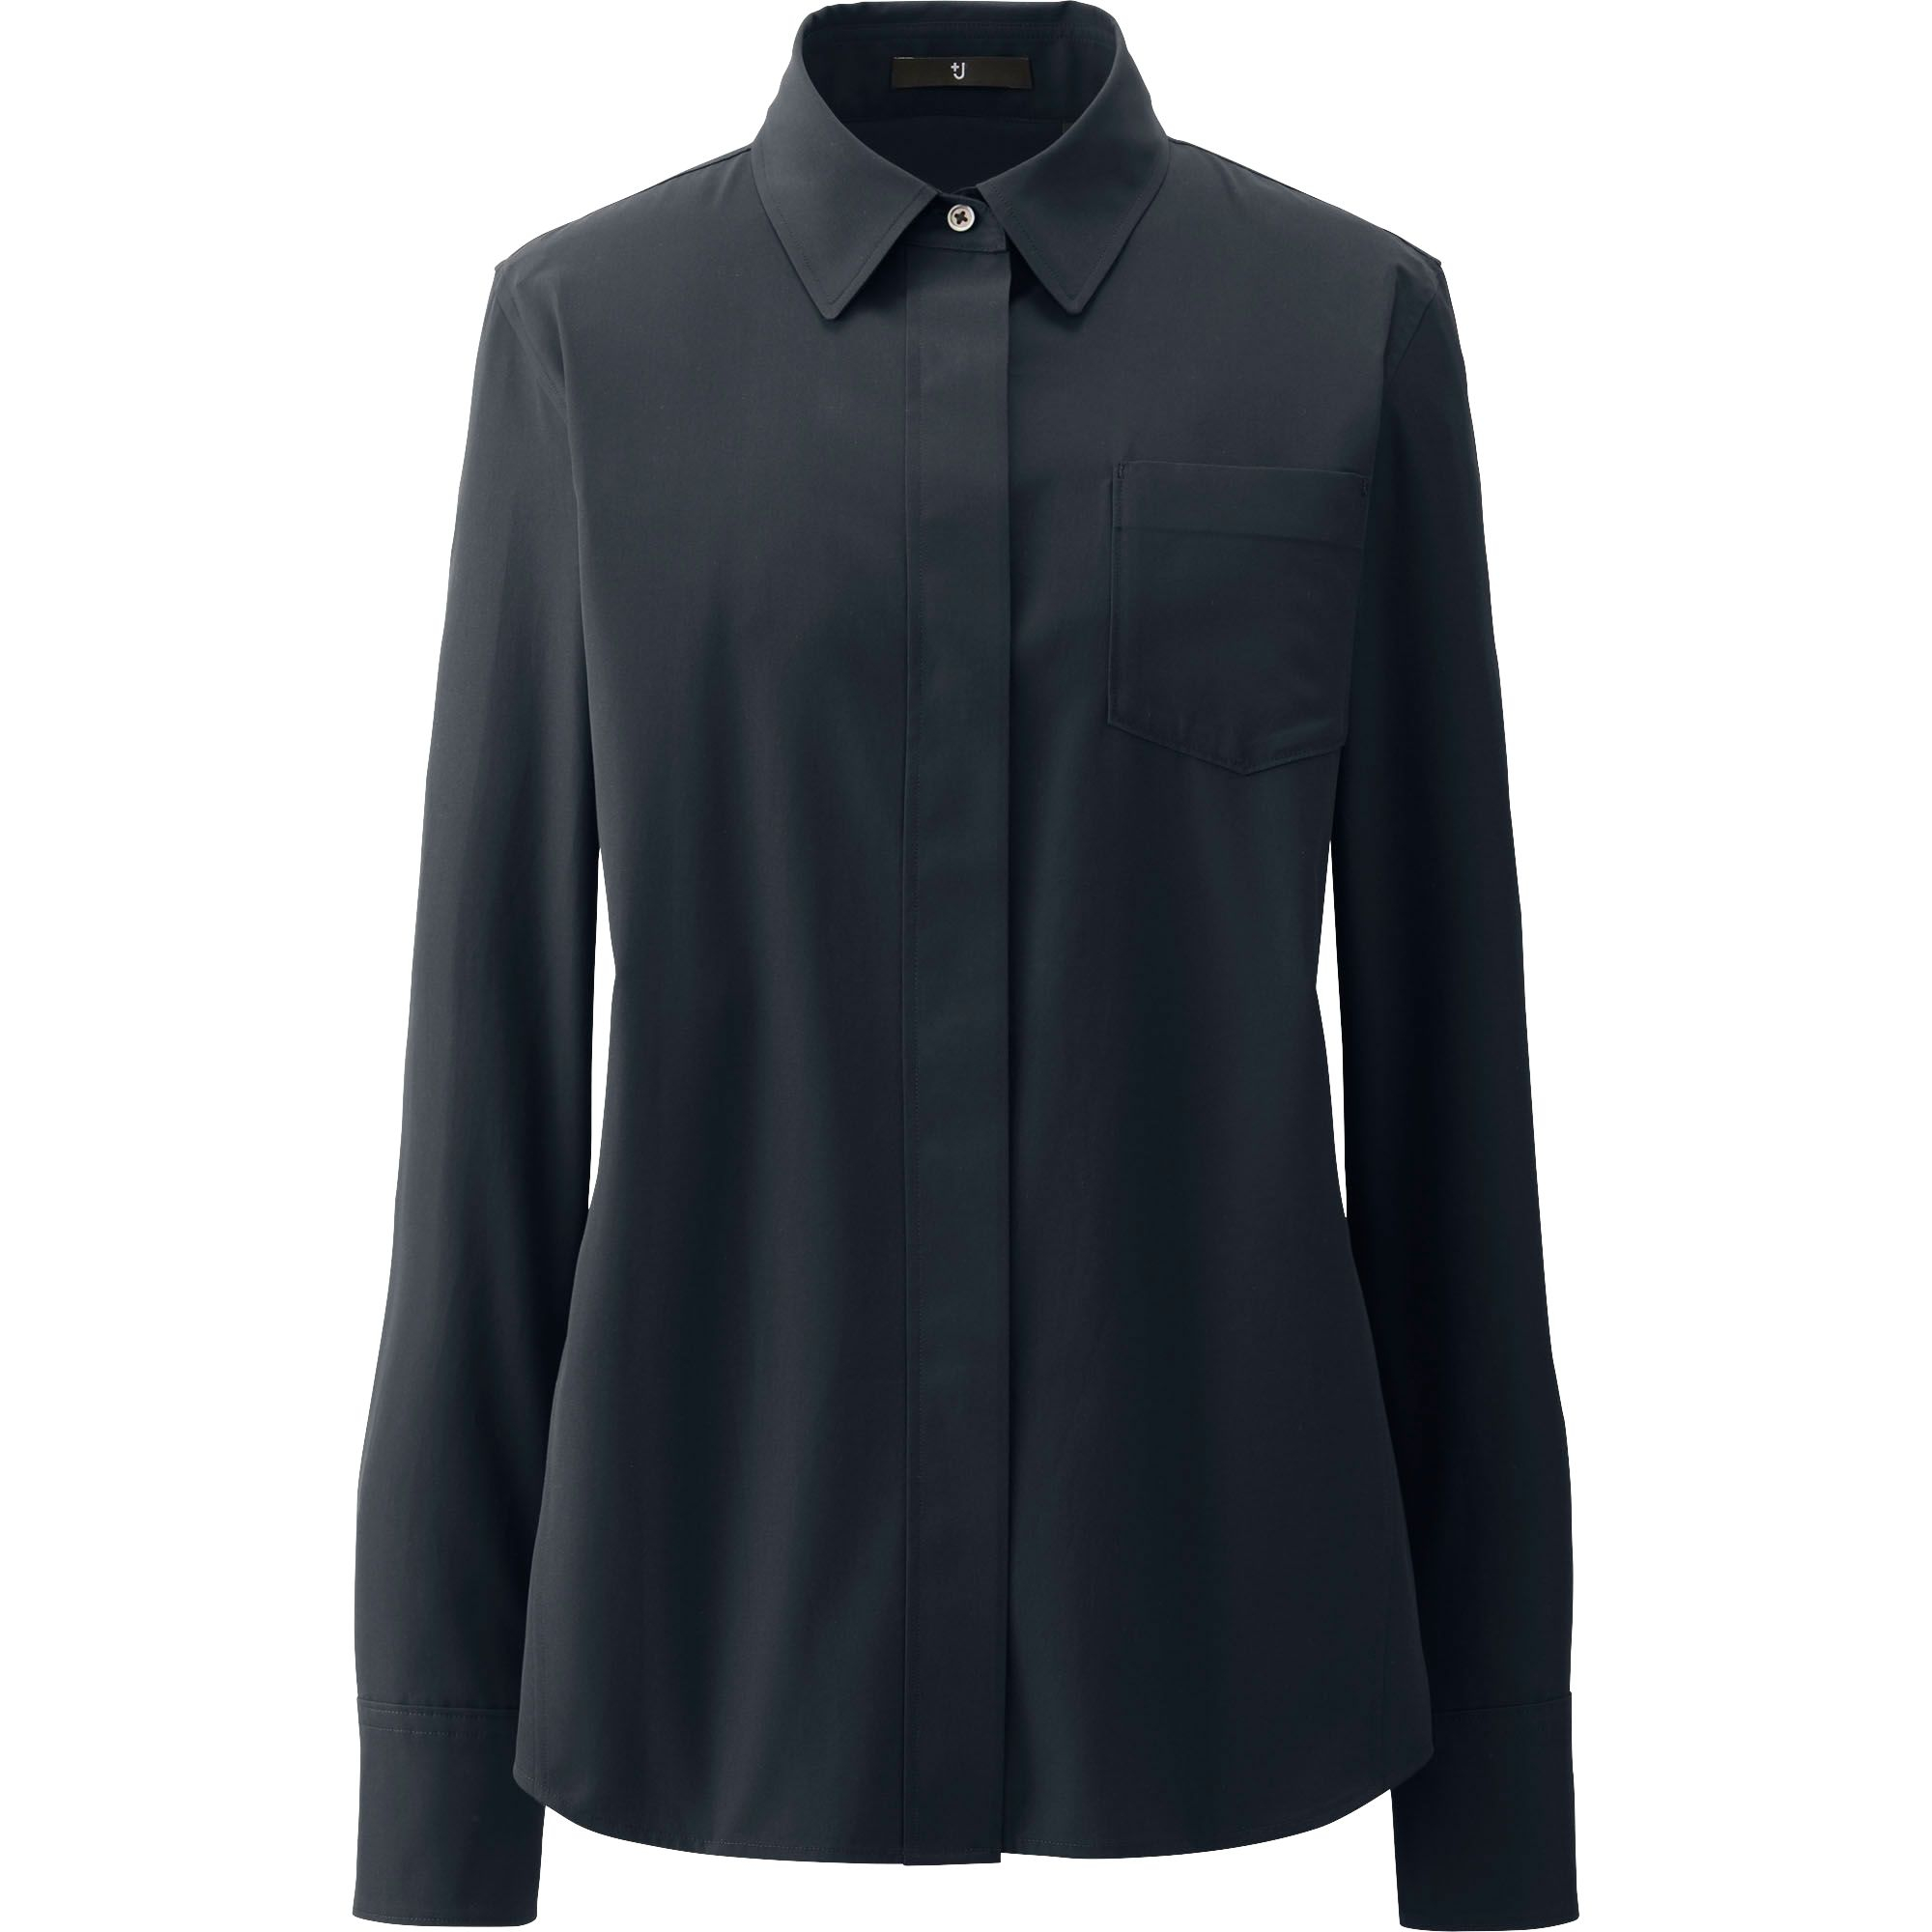 Uniqlo j extra fine cotton slim fit long sleeve shirt in for Black fitted long sleeve t shirts